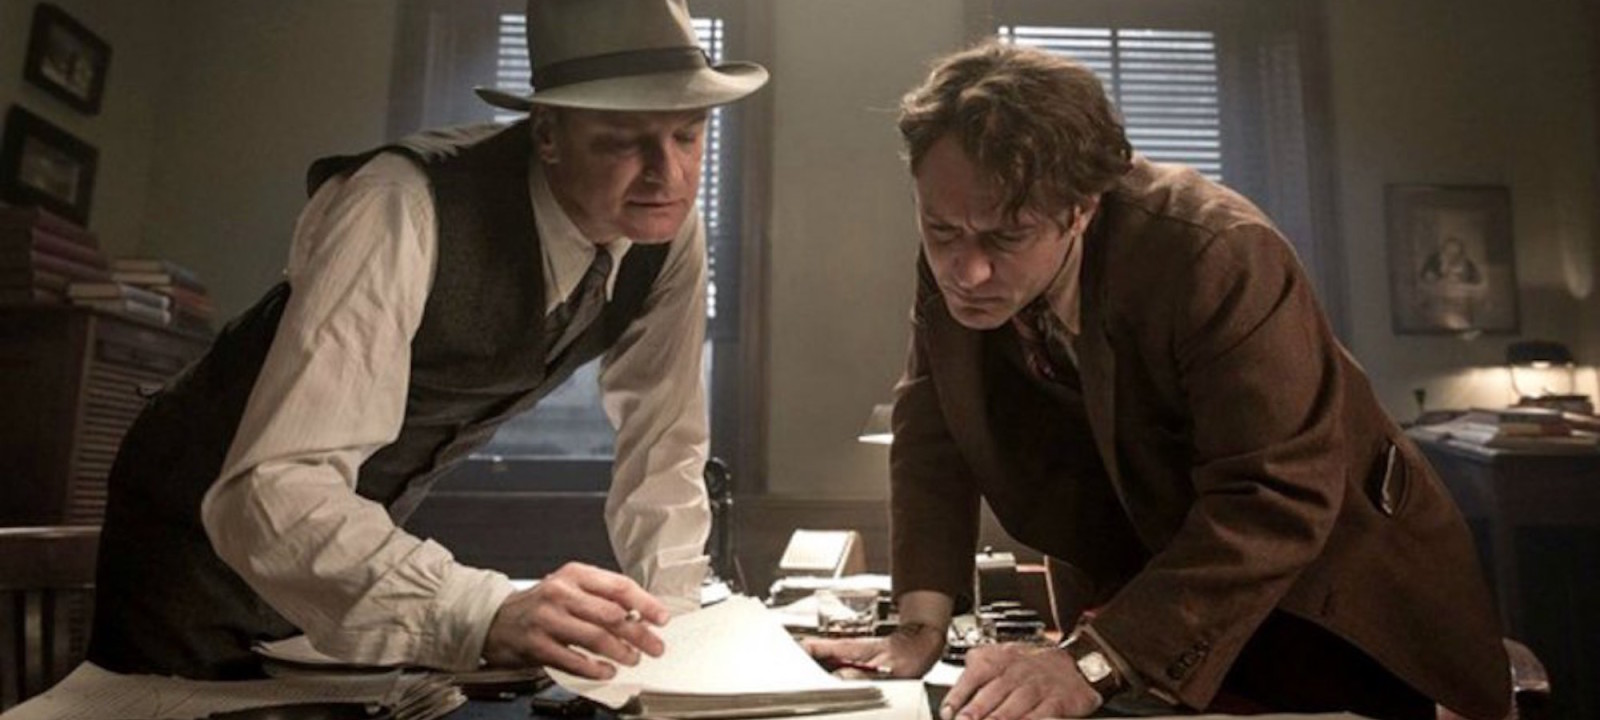 Colin Firth and Jude Law star in Genius.